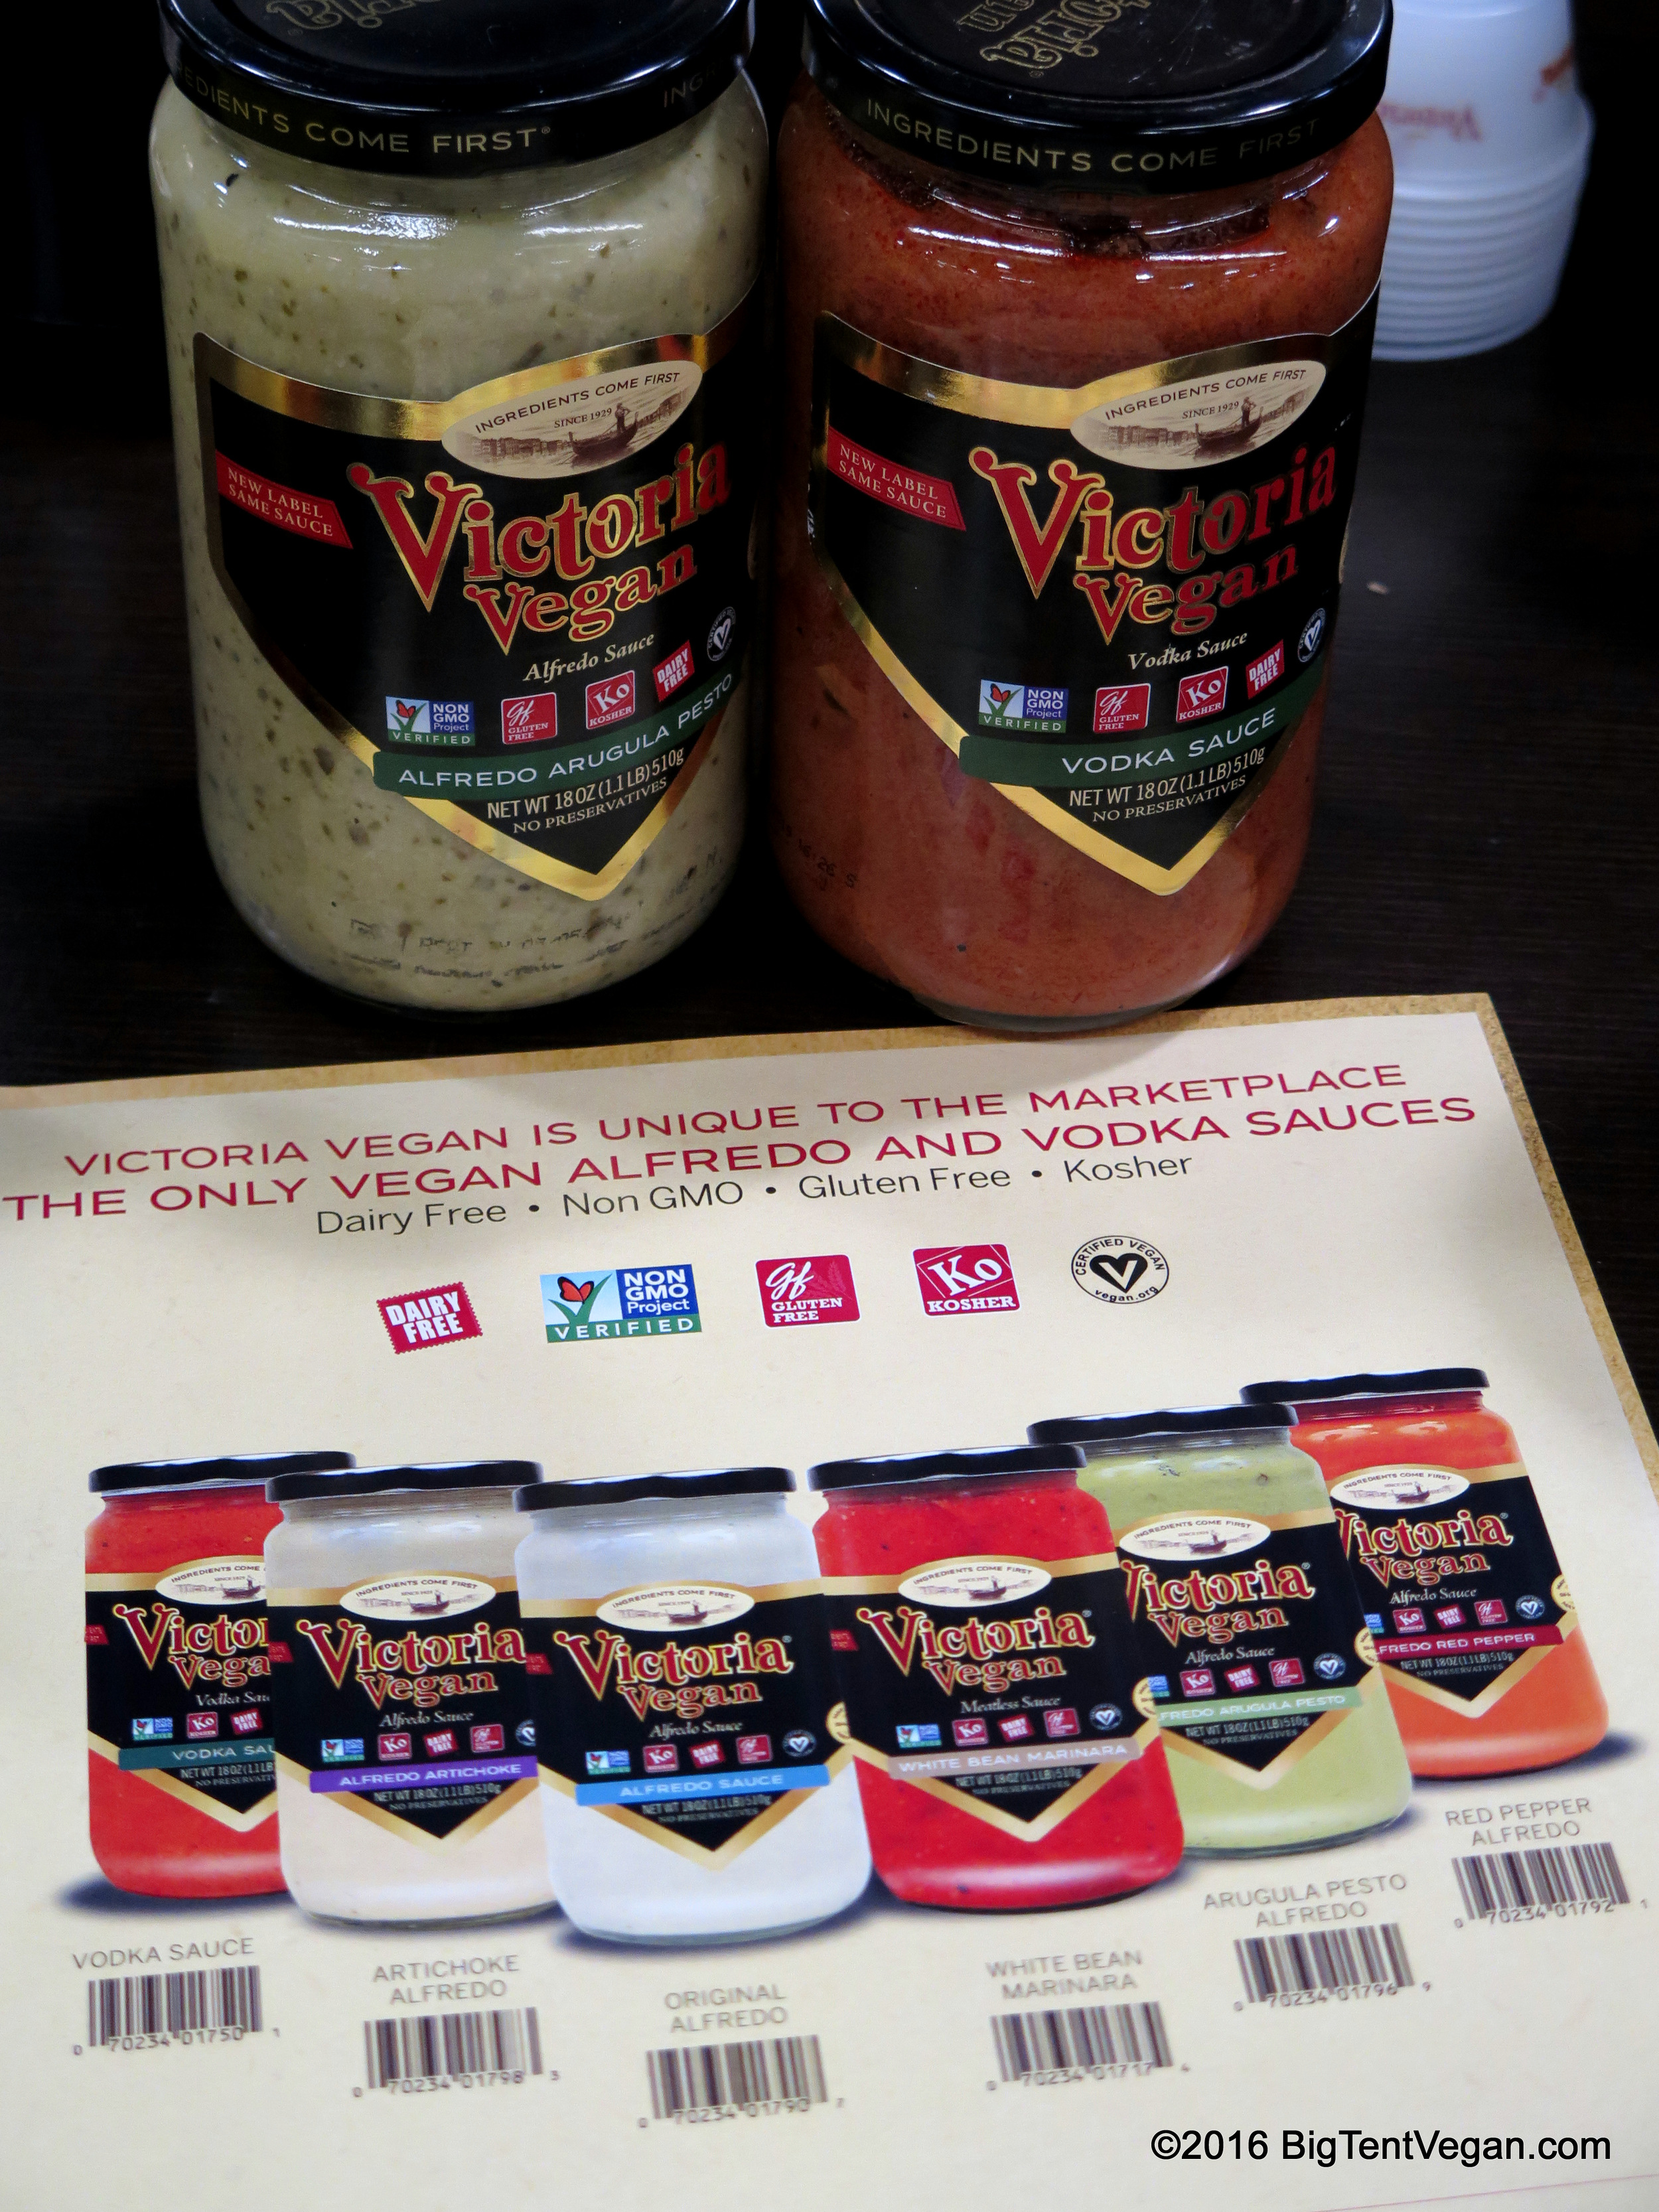 Victoria Fine Foods isn't a vegan company, but they have an extensive line of vegan sauces. I dug the vodka sauce.